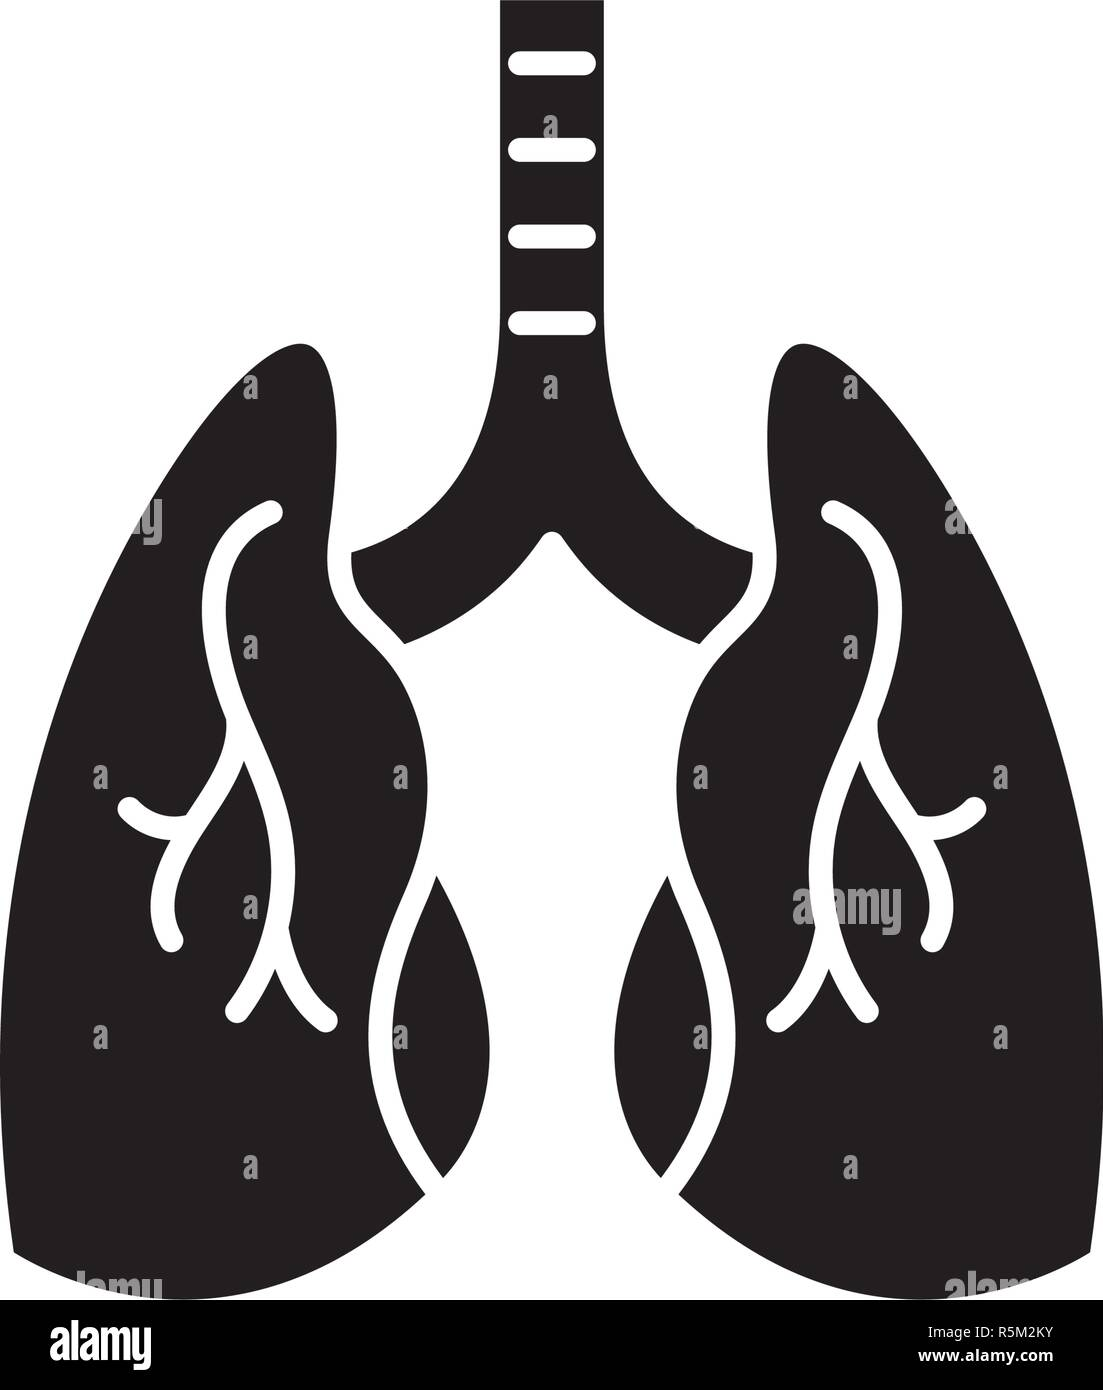 Lungs black icon, vector sign on isolated background. Lungs concept symbol, illustration  - Stock Image